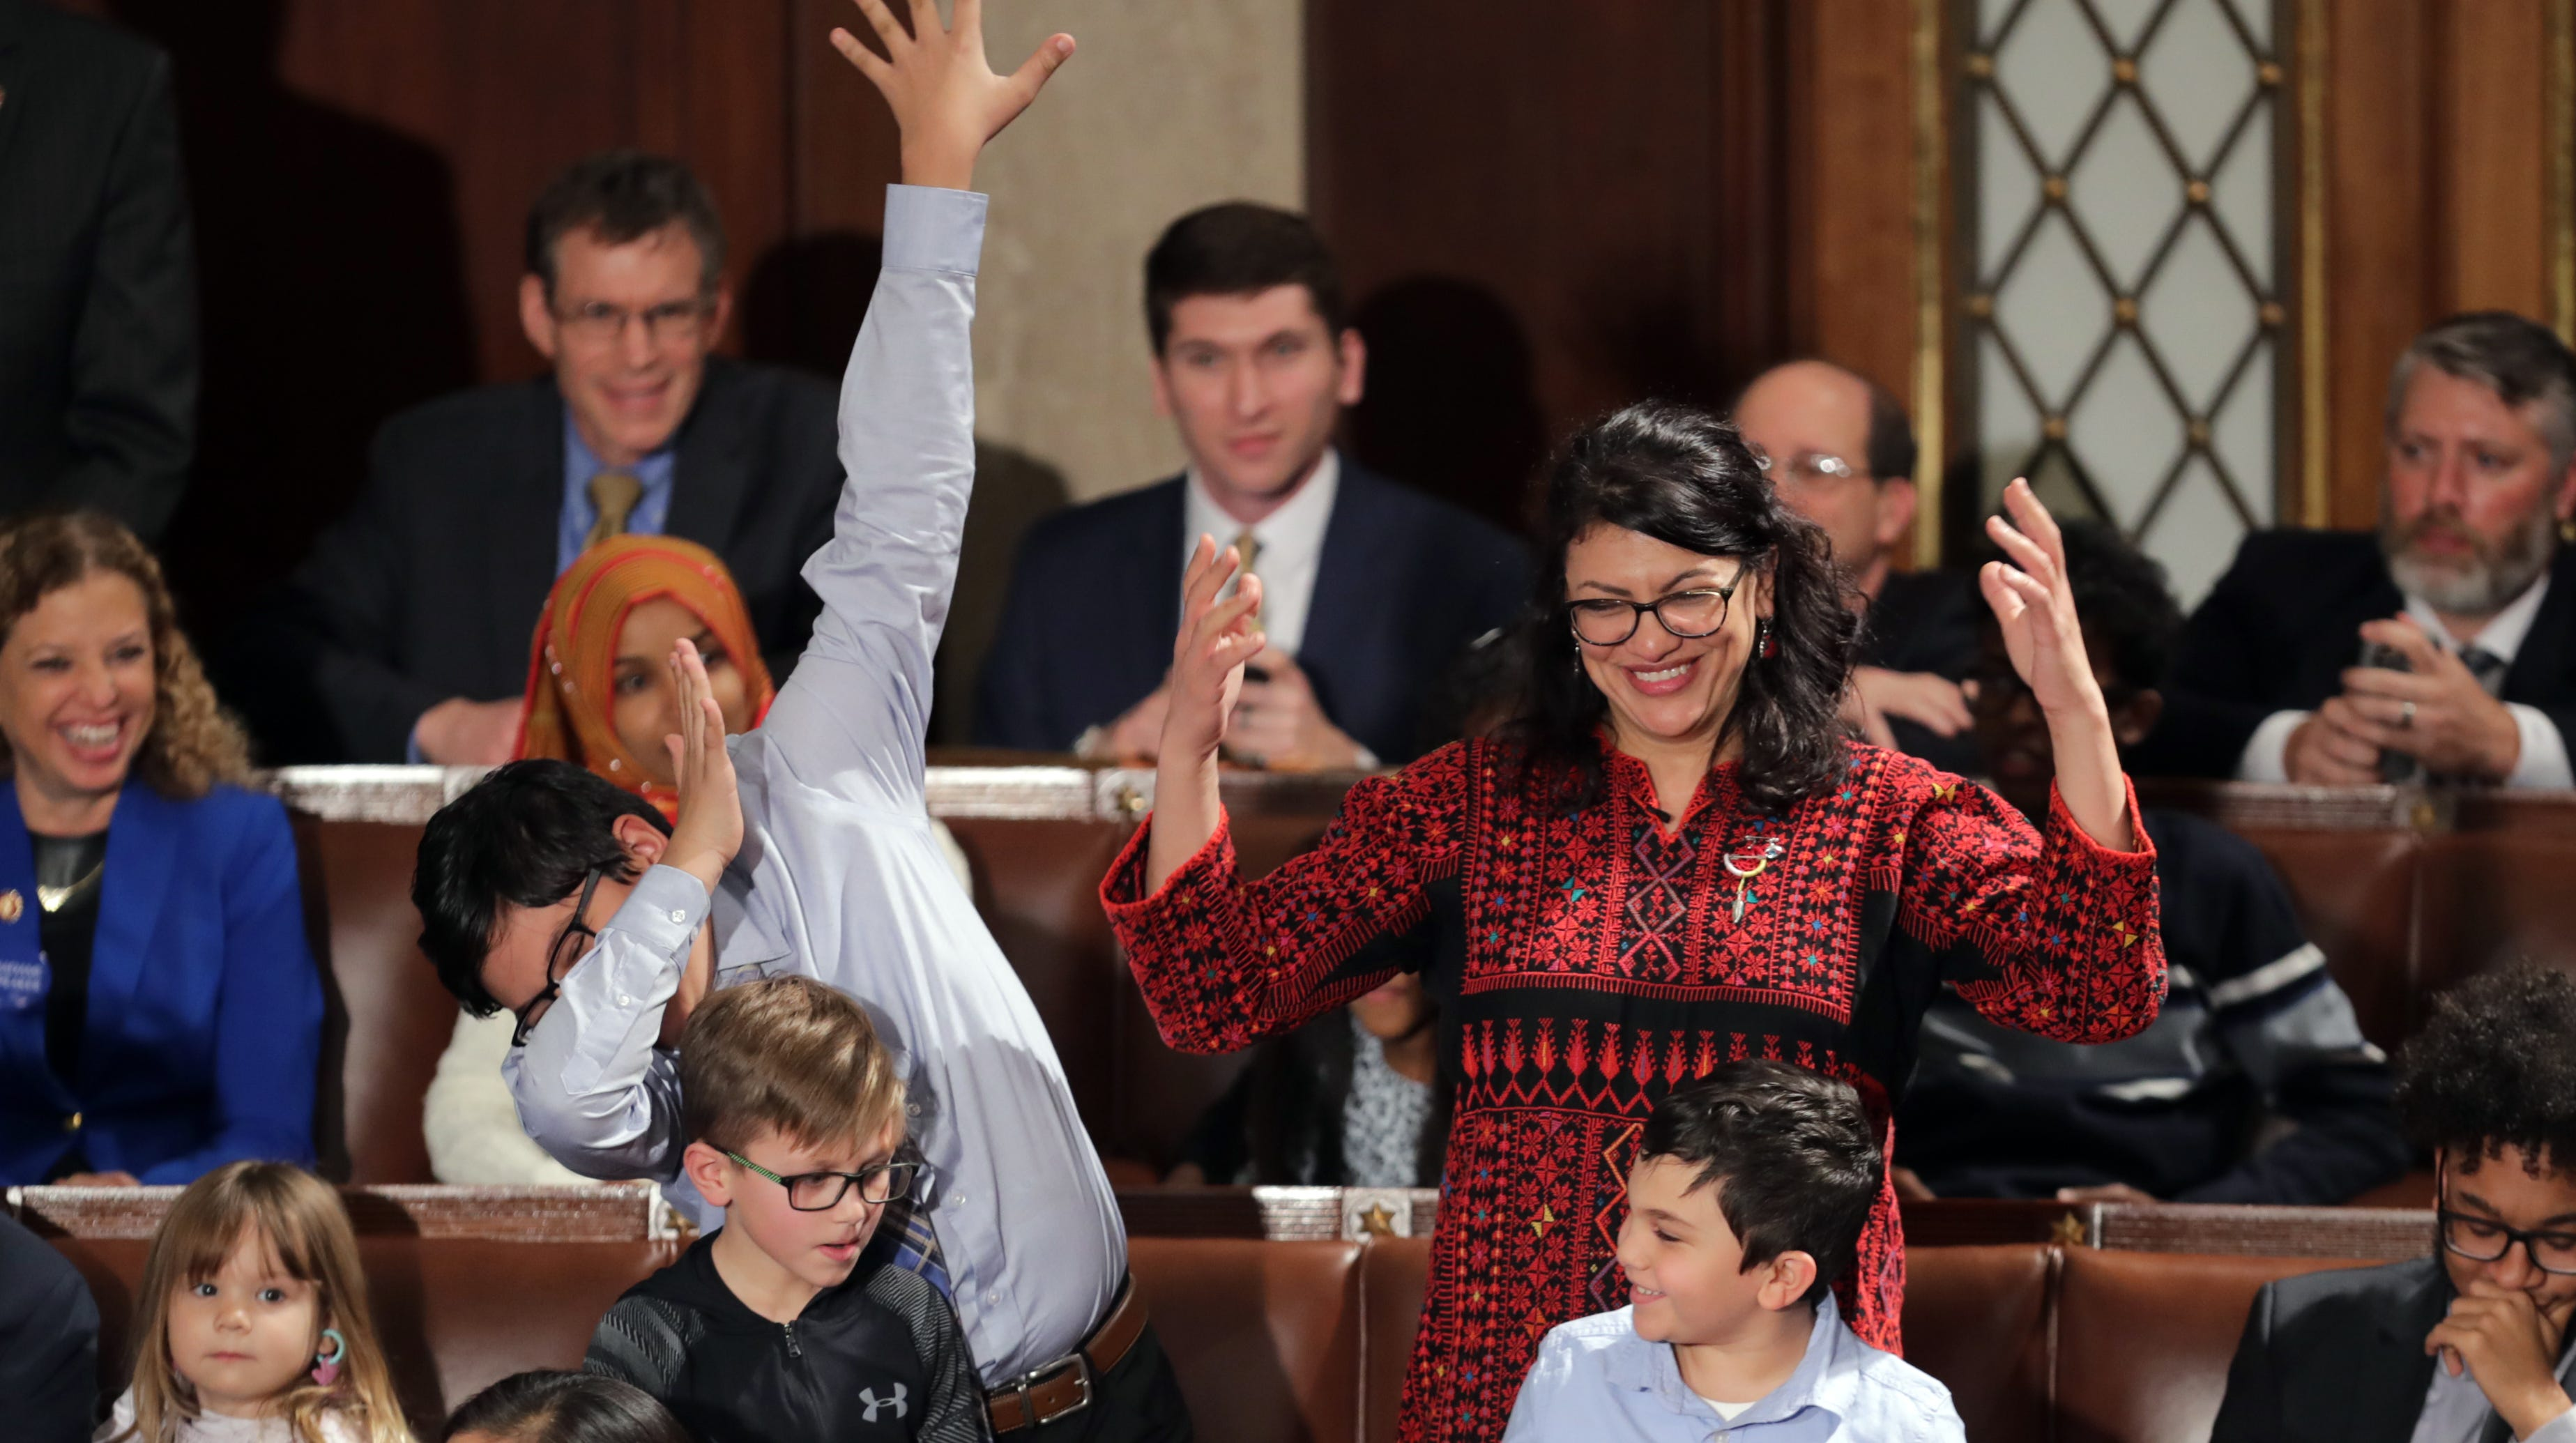 Rep.-elect Rashida Tlaib (D-MI) votes for Speaker-designate Rep. Nancy Pelosi (D-CA) along with her kids during the first session of the 116th Congress at the U.S. Capitol Jan. 3, 2019, in Washington, DC.